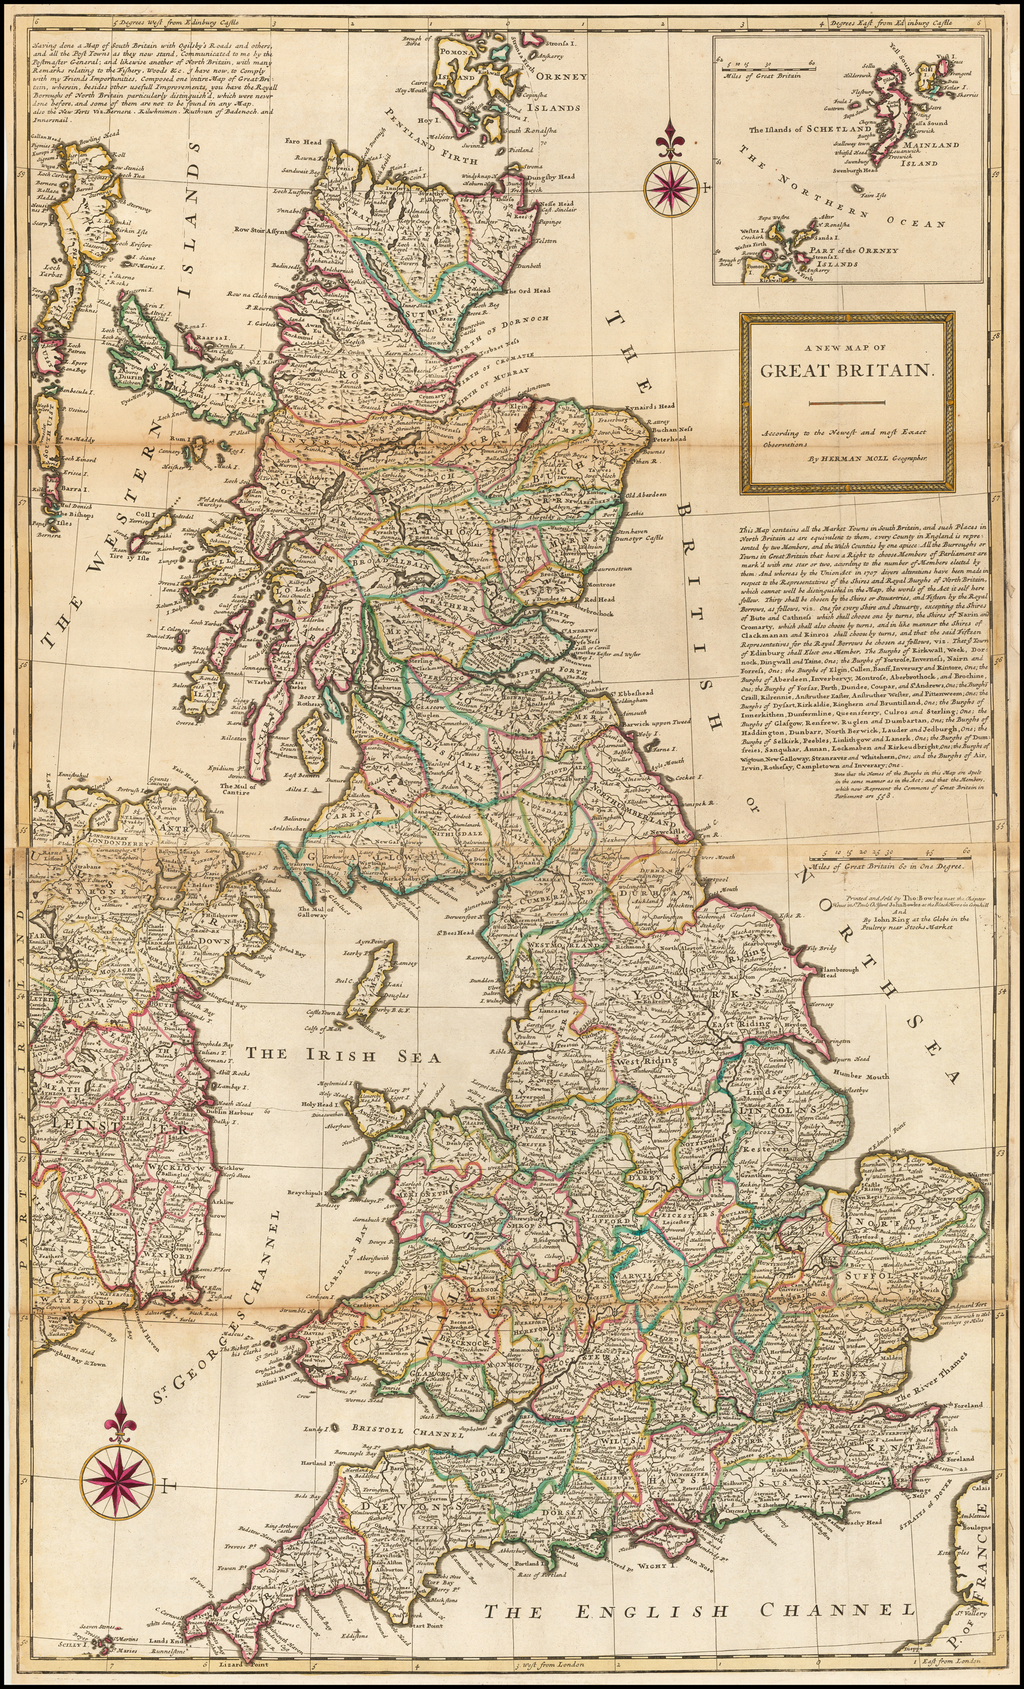 A New Map of Great Britain -- According to the Newest and most Exact Observations By Herman Moll